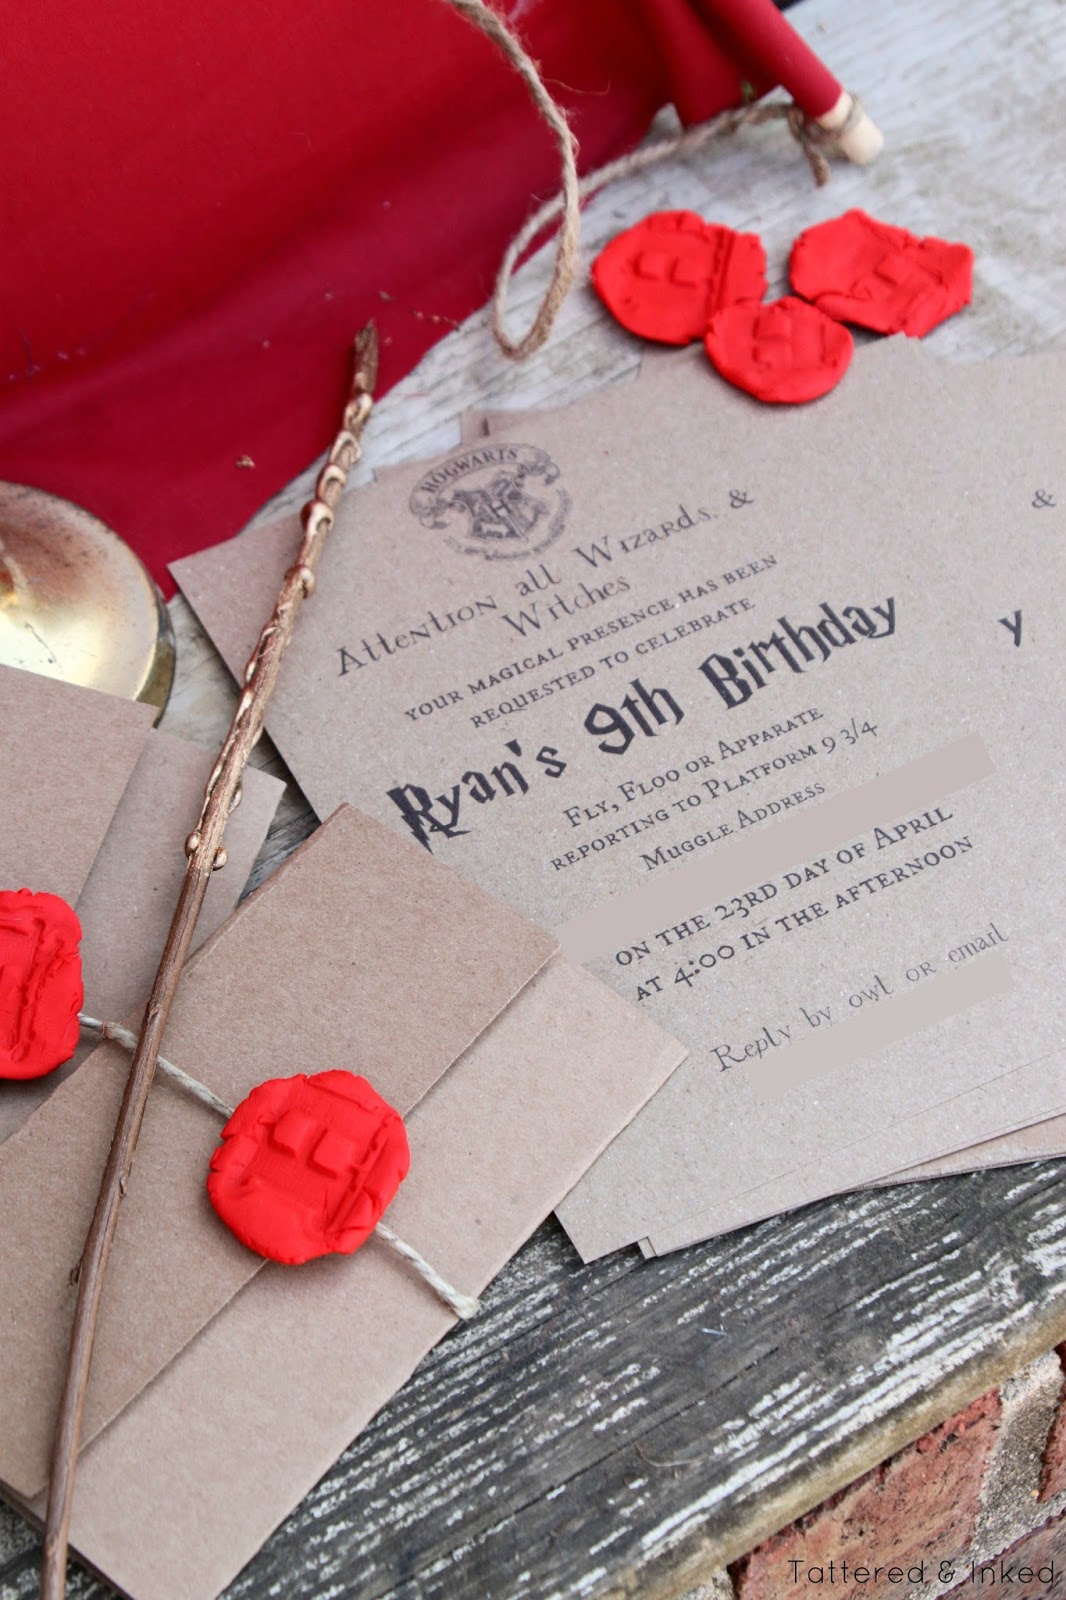 Tattered and Inked: DIY Harry Potter Birthday Party